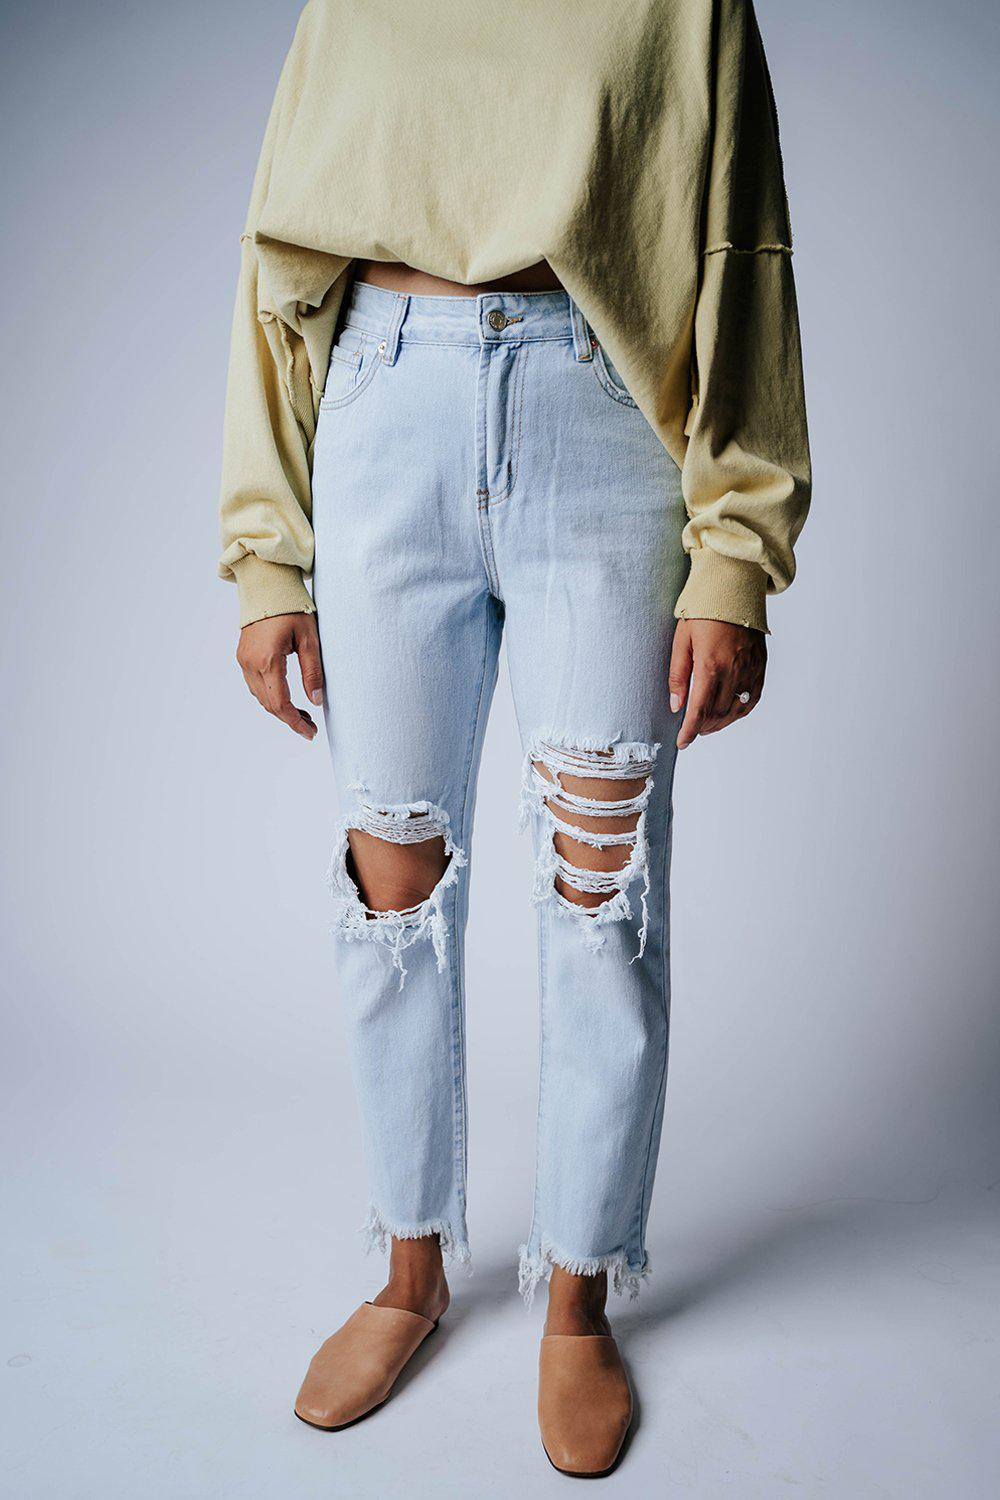 best_seller, Candor High Rise Jeans, Bottom, women's clothing, dresses, skirts, coats, jackets, shoes, boots, tops, tee shirts, jeans, free people, levi's, rollas, jumpsuits, bottoms, tops, sweaters, pullovers, pants, shorts, sweats,.